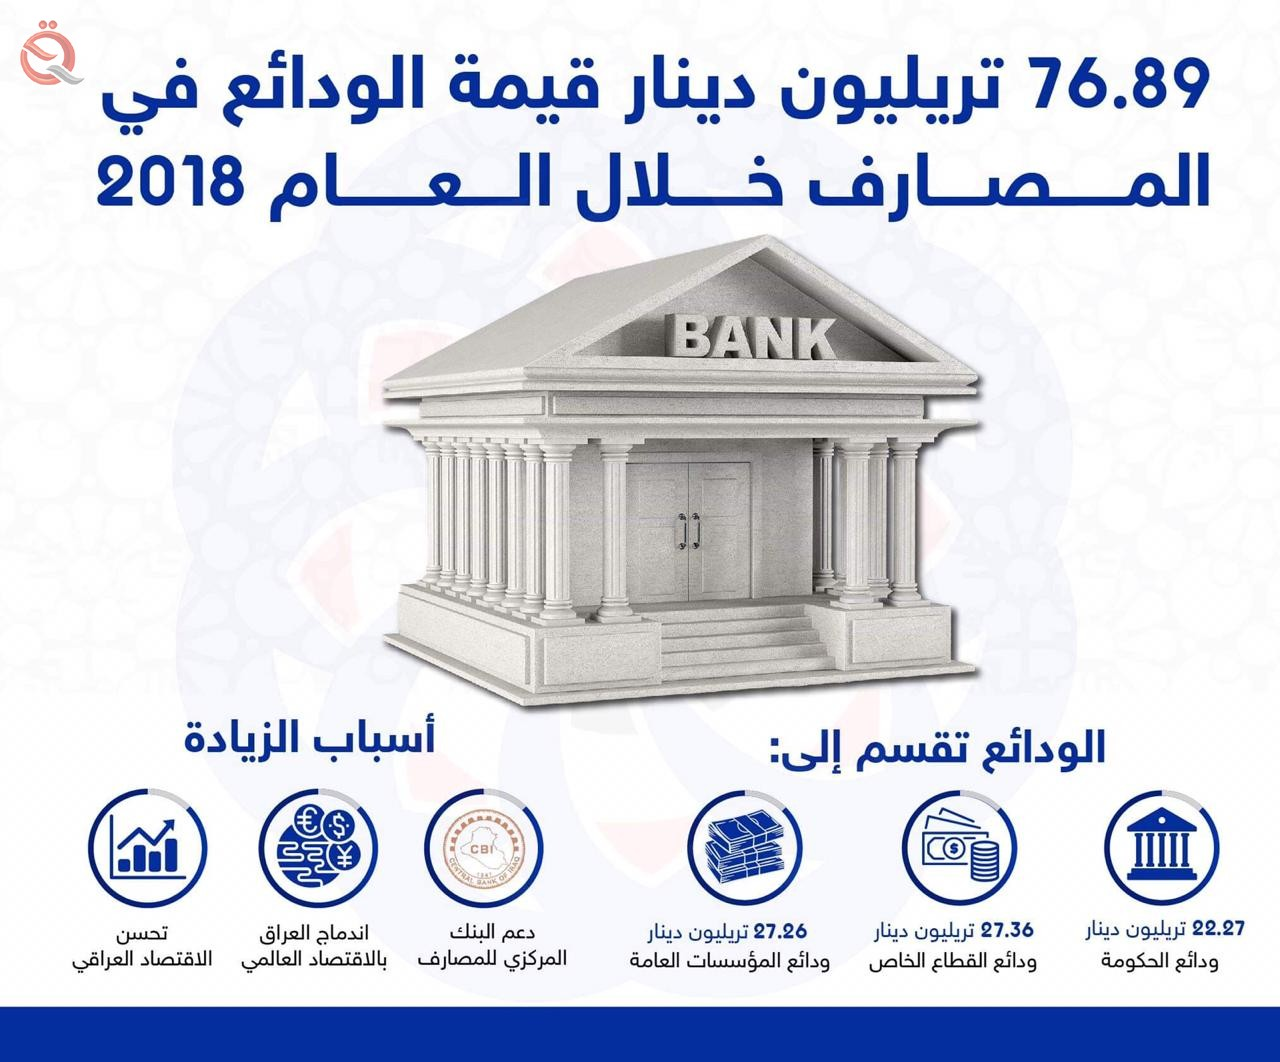 76.89 trillion dinars value of deposits in commercial banks  14517